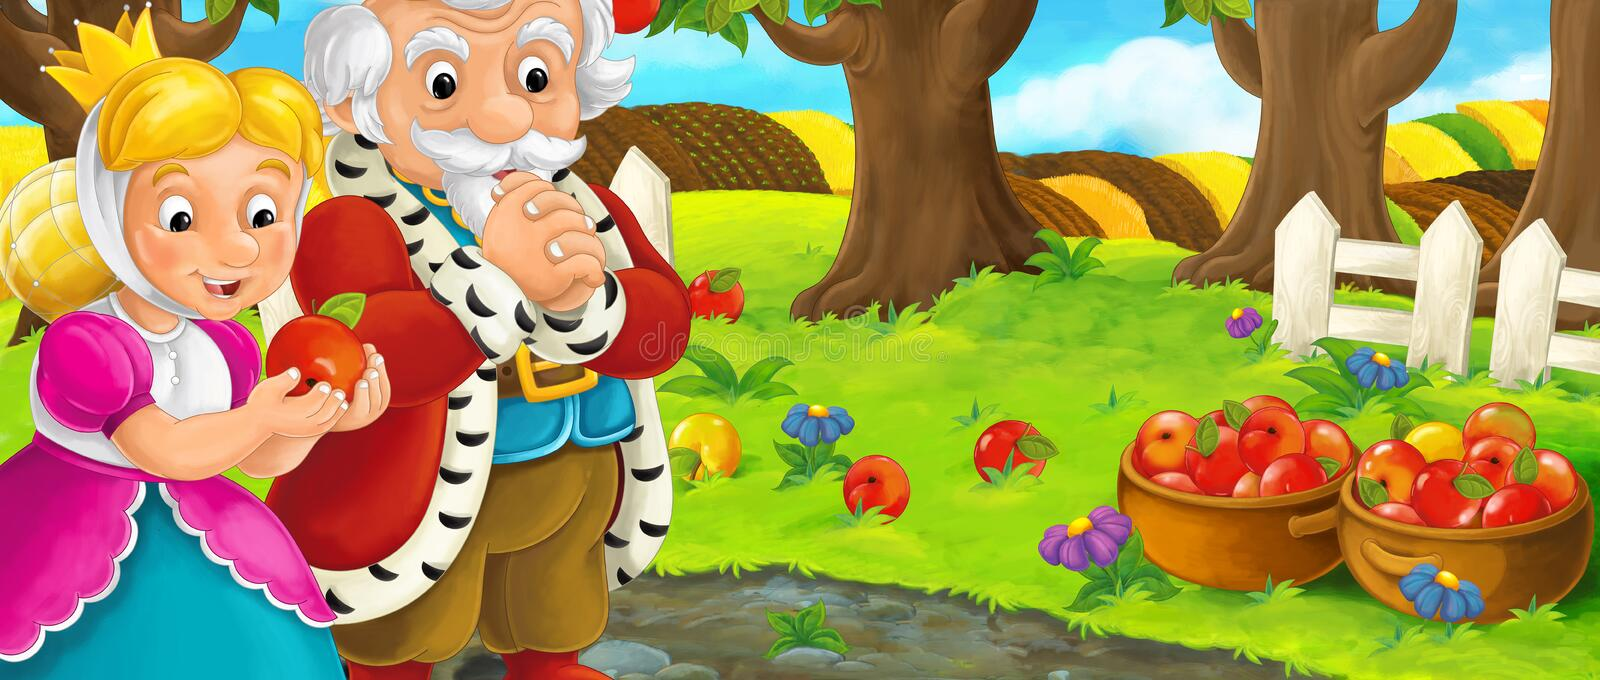 Cartoon scene with royal pair visiting farm garden during beautiful day royalty free illustration